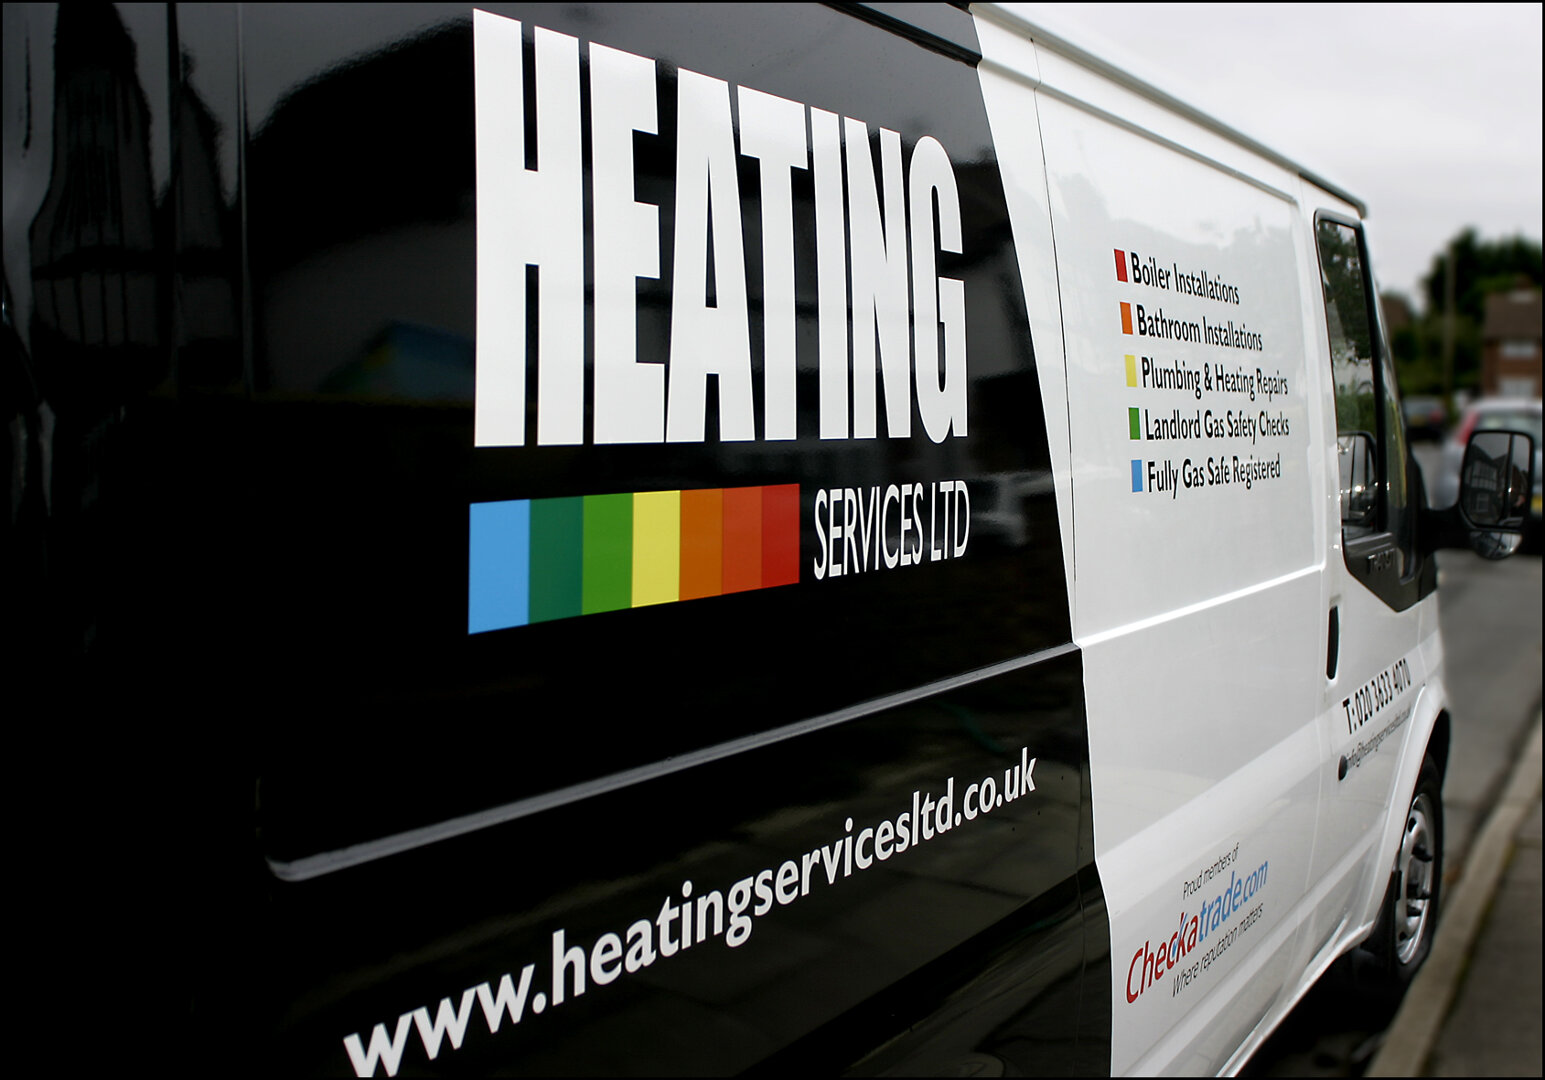 Plumbers Boiler Installation Service and Repairs and Bathroom Design and Installation by Heating Services Ltd in Godstone (5)